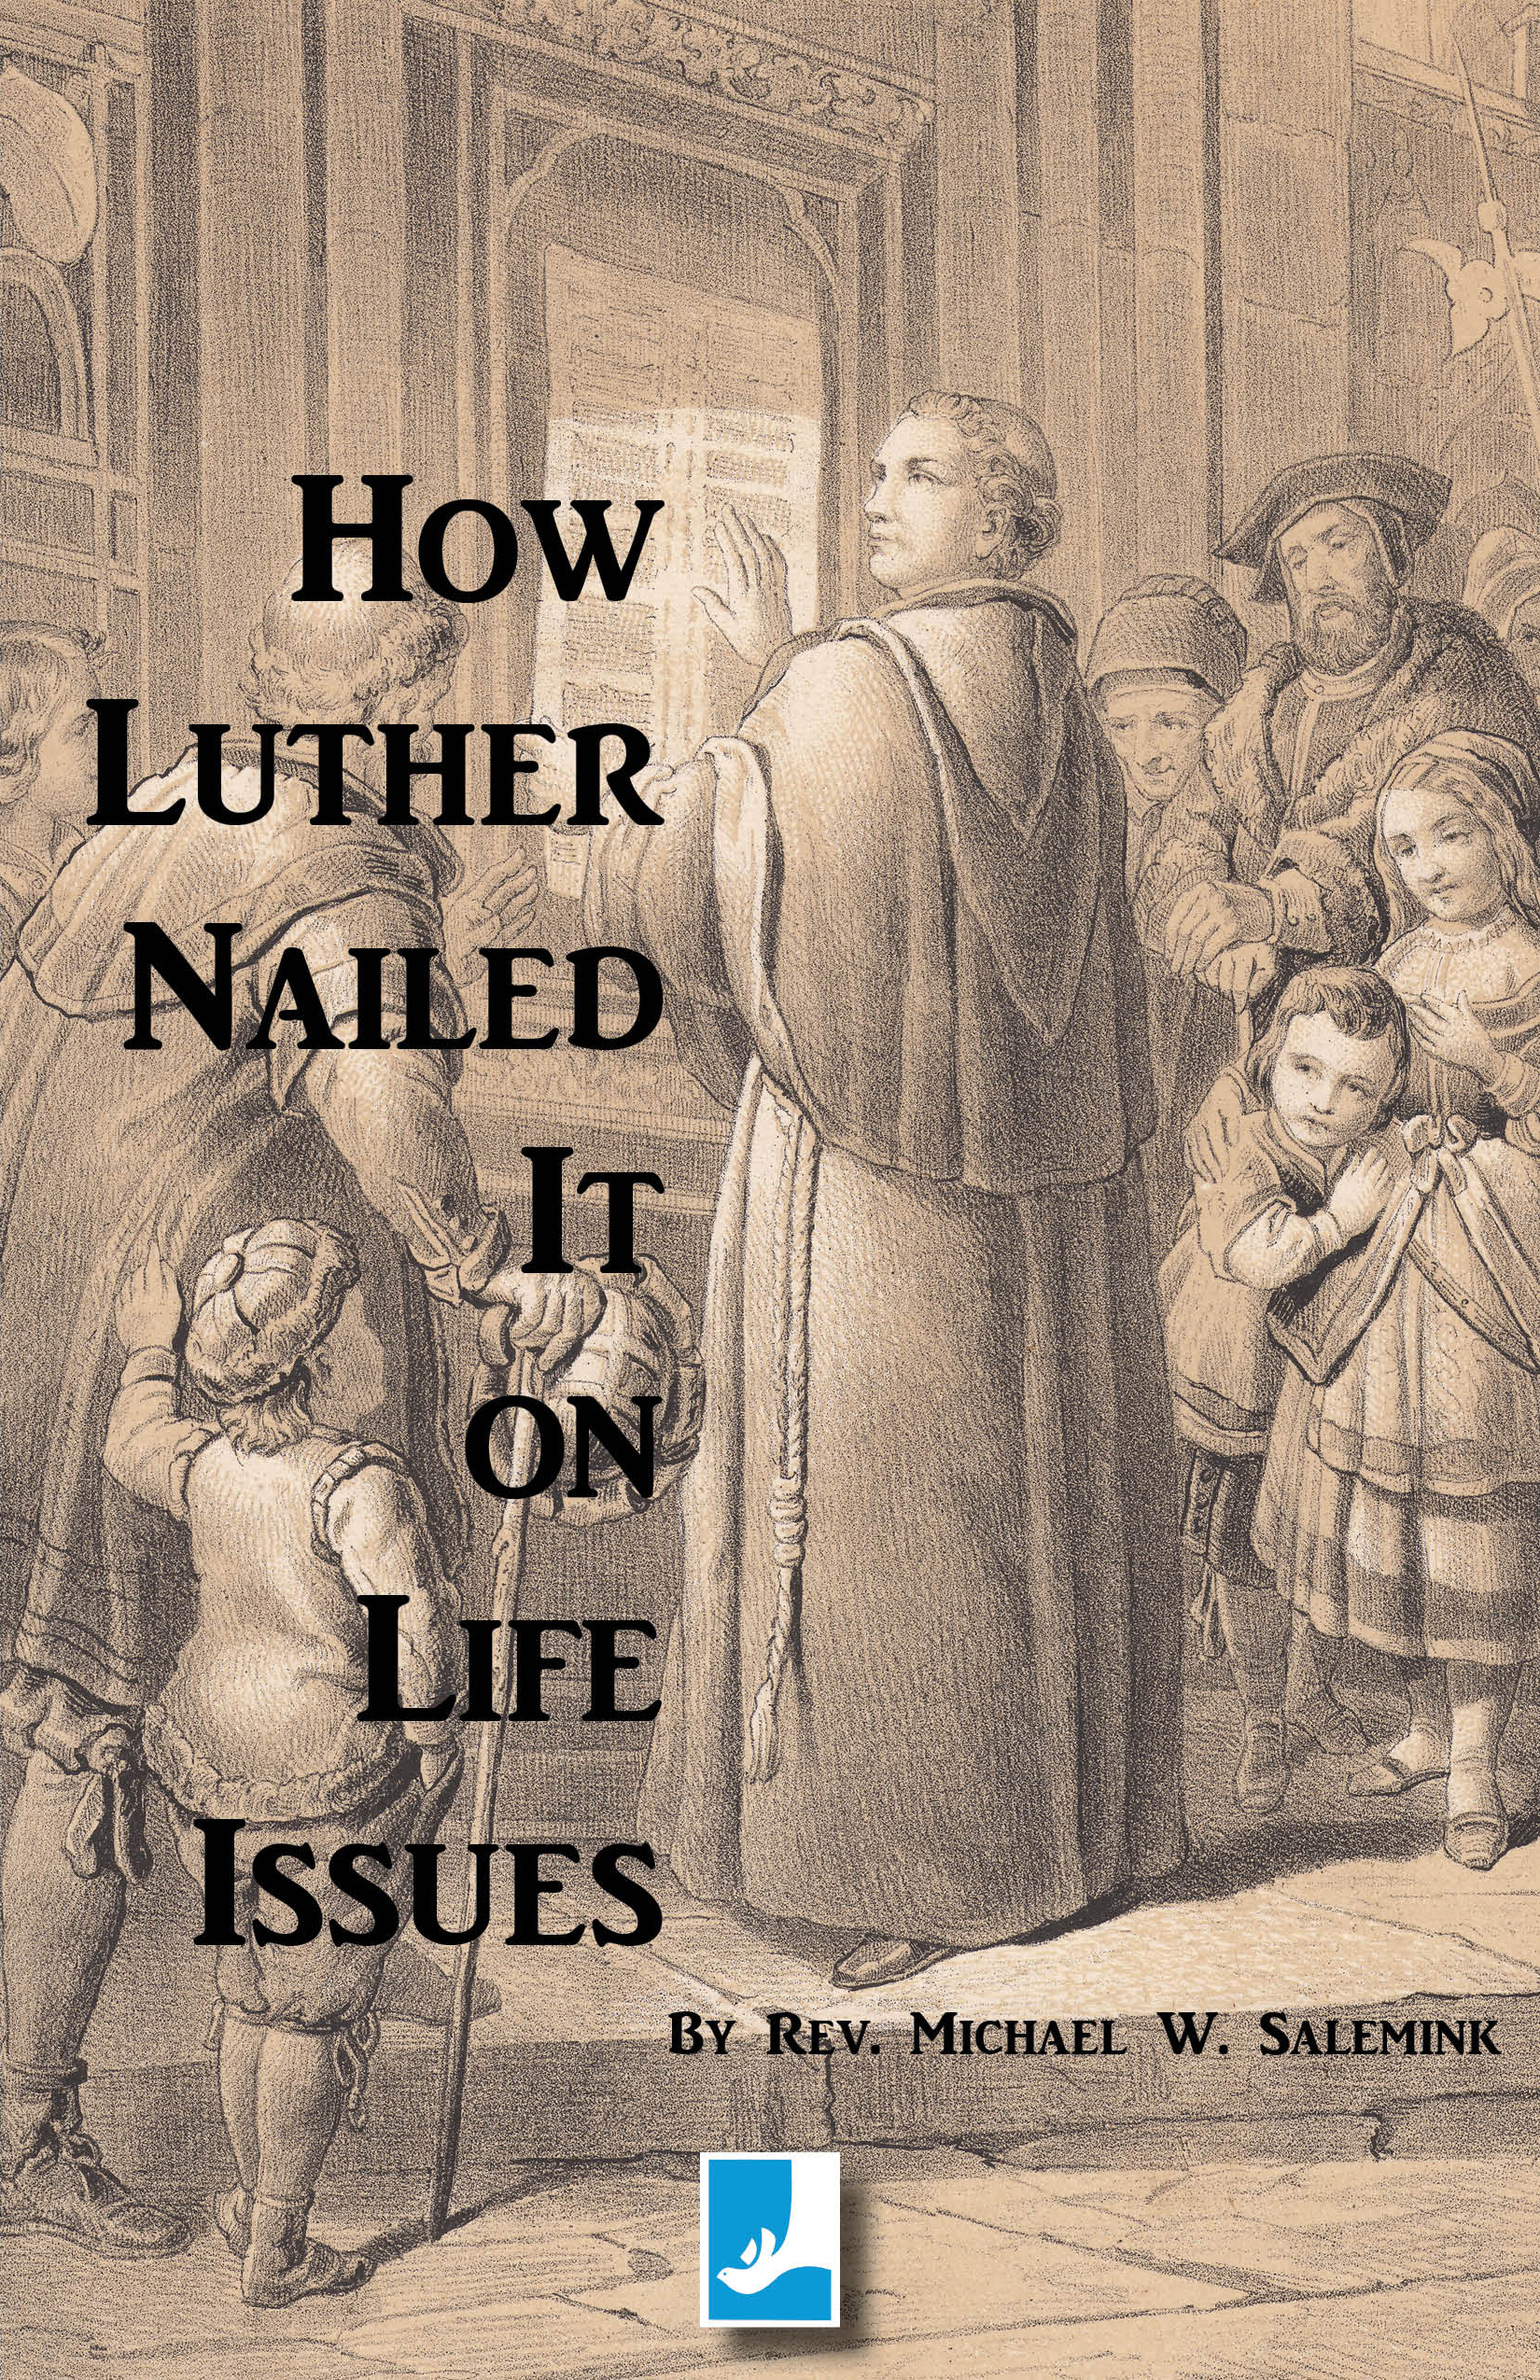 How Luther Nailed It on Life Issues